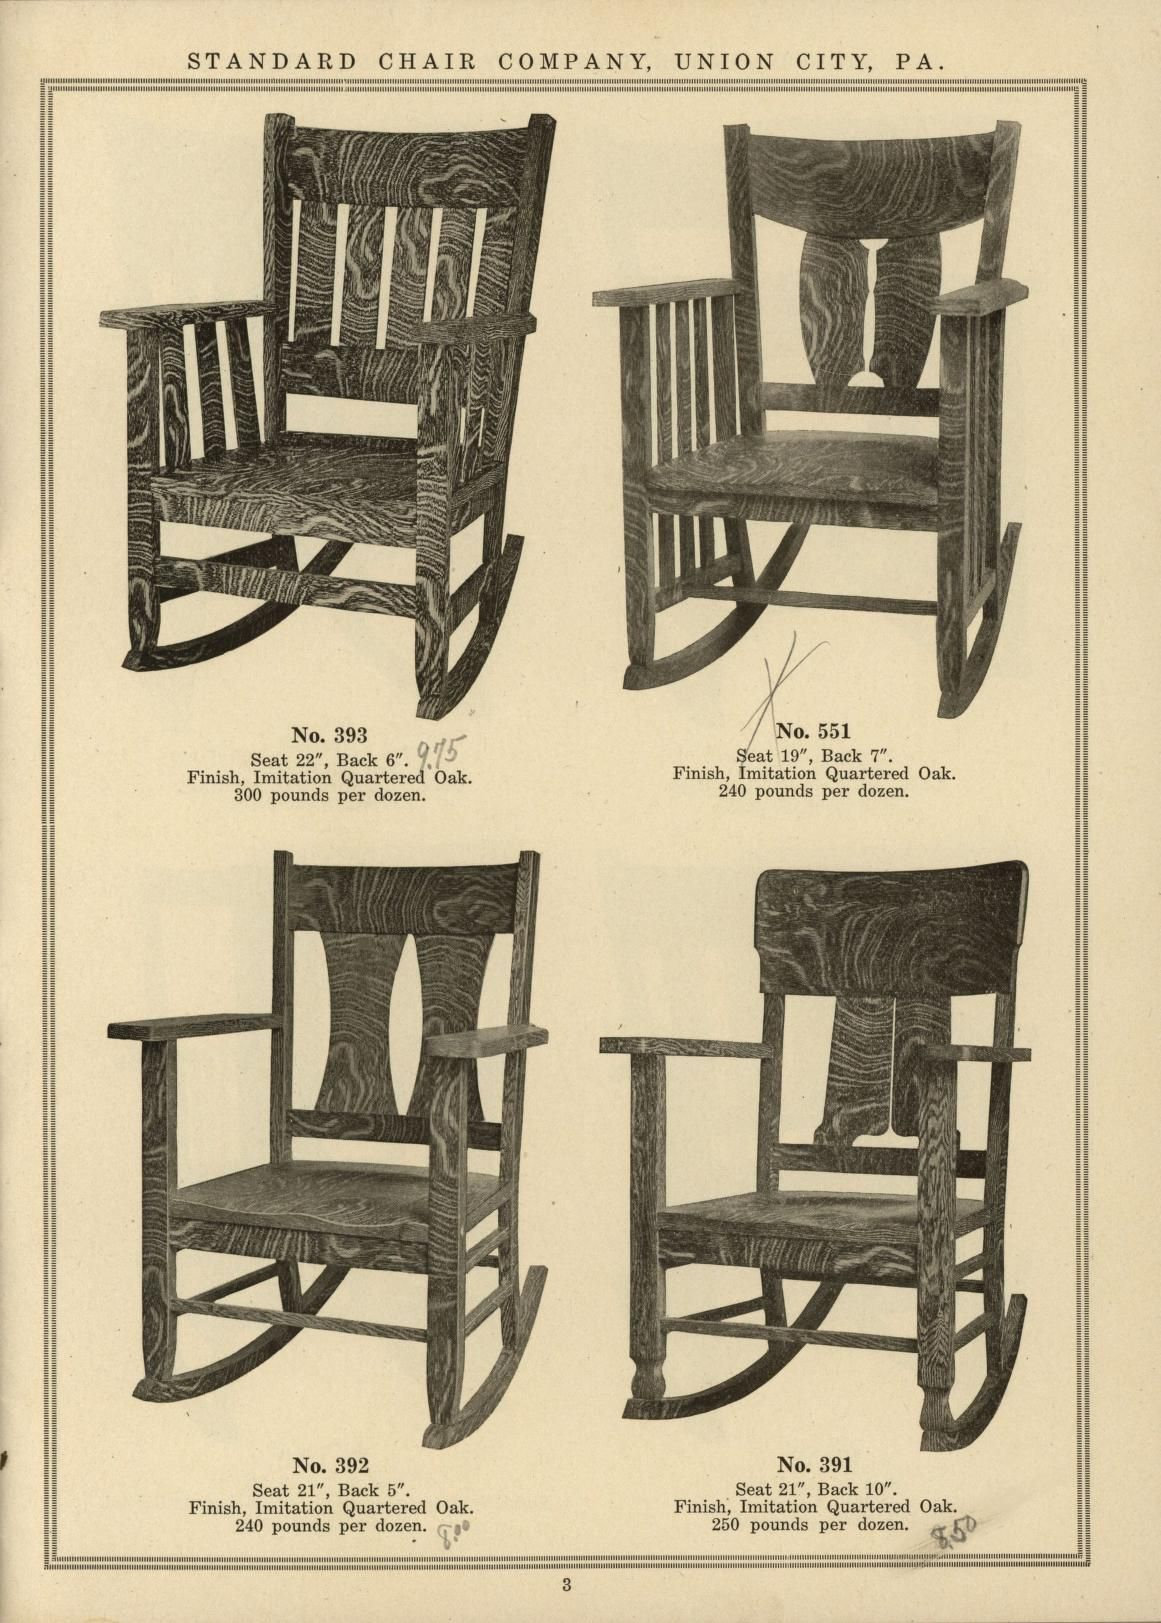 Standard Chair Company Standard Chair Company Free Download Borrow And Streaming Internet Archive Furniture Expensive Furniture Purchase Furniture